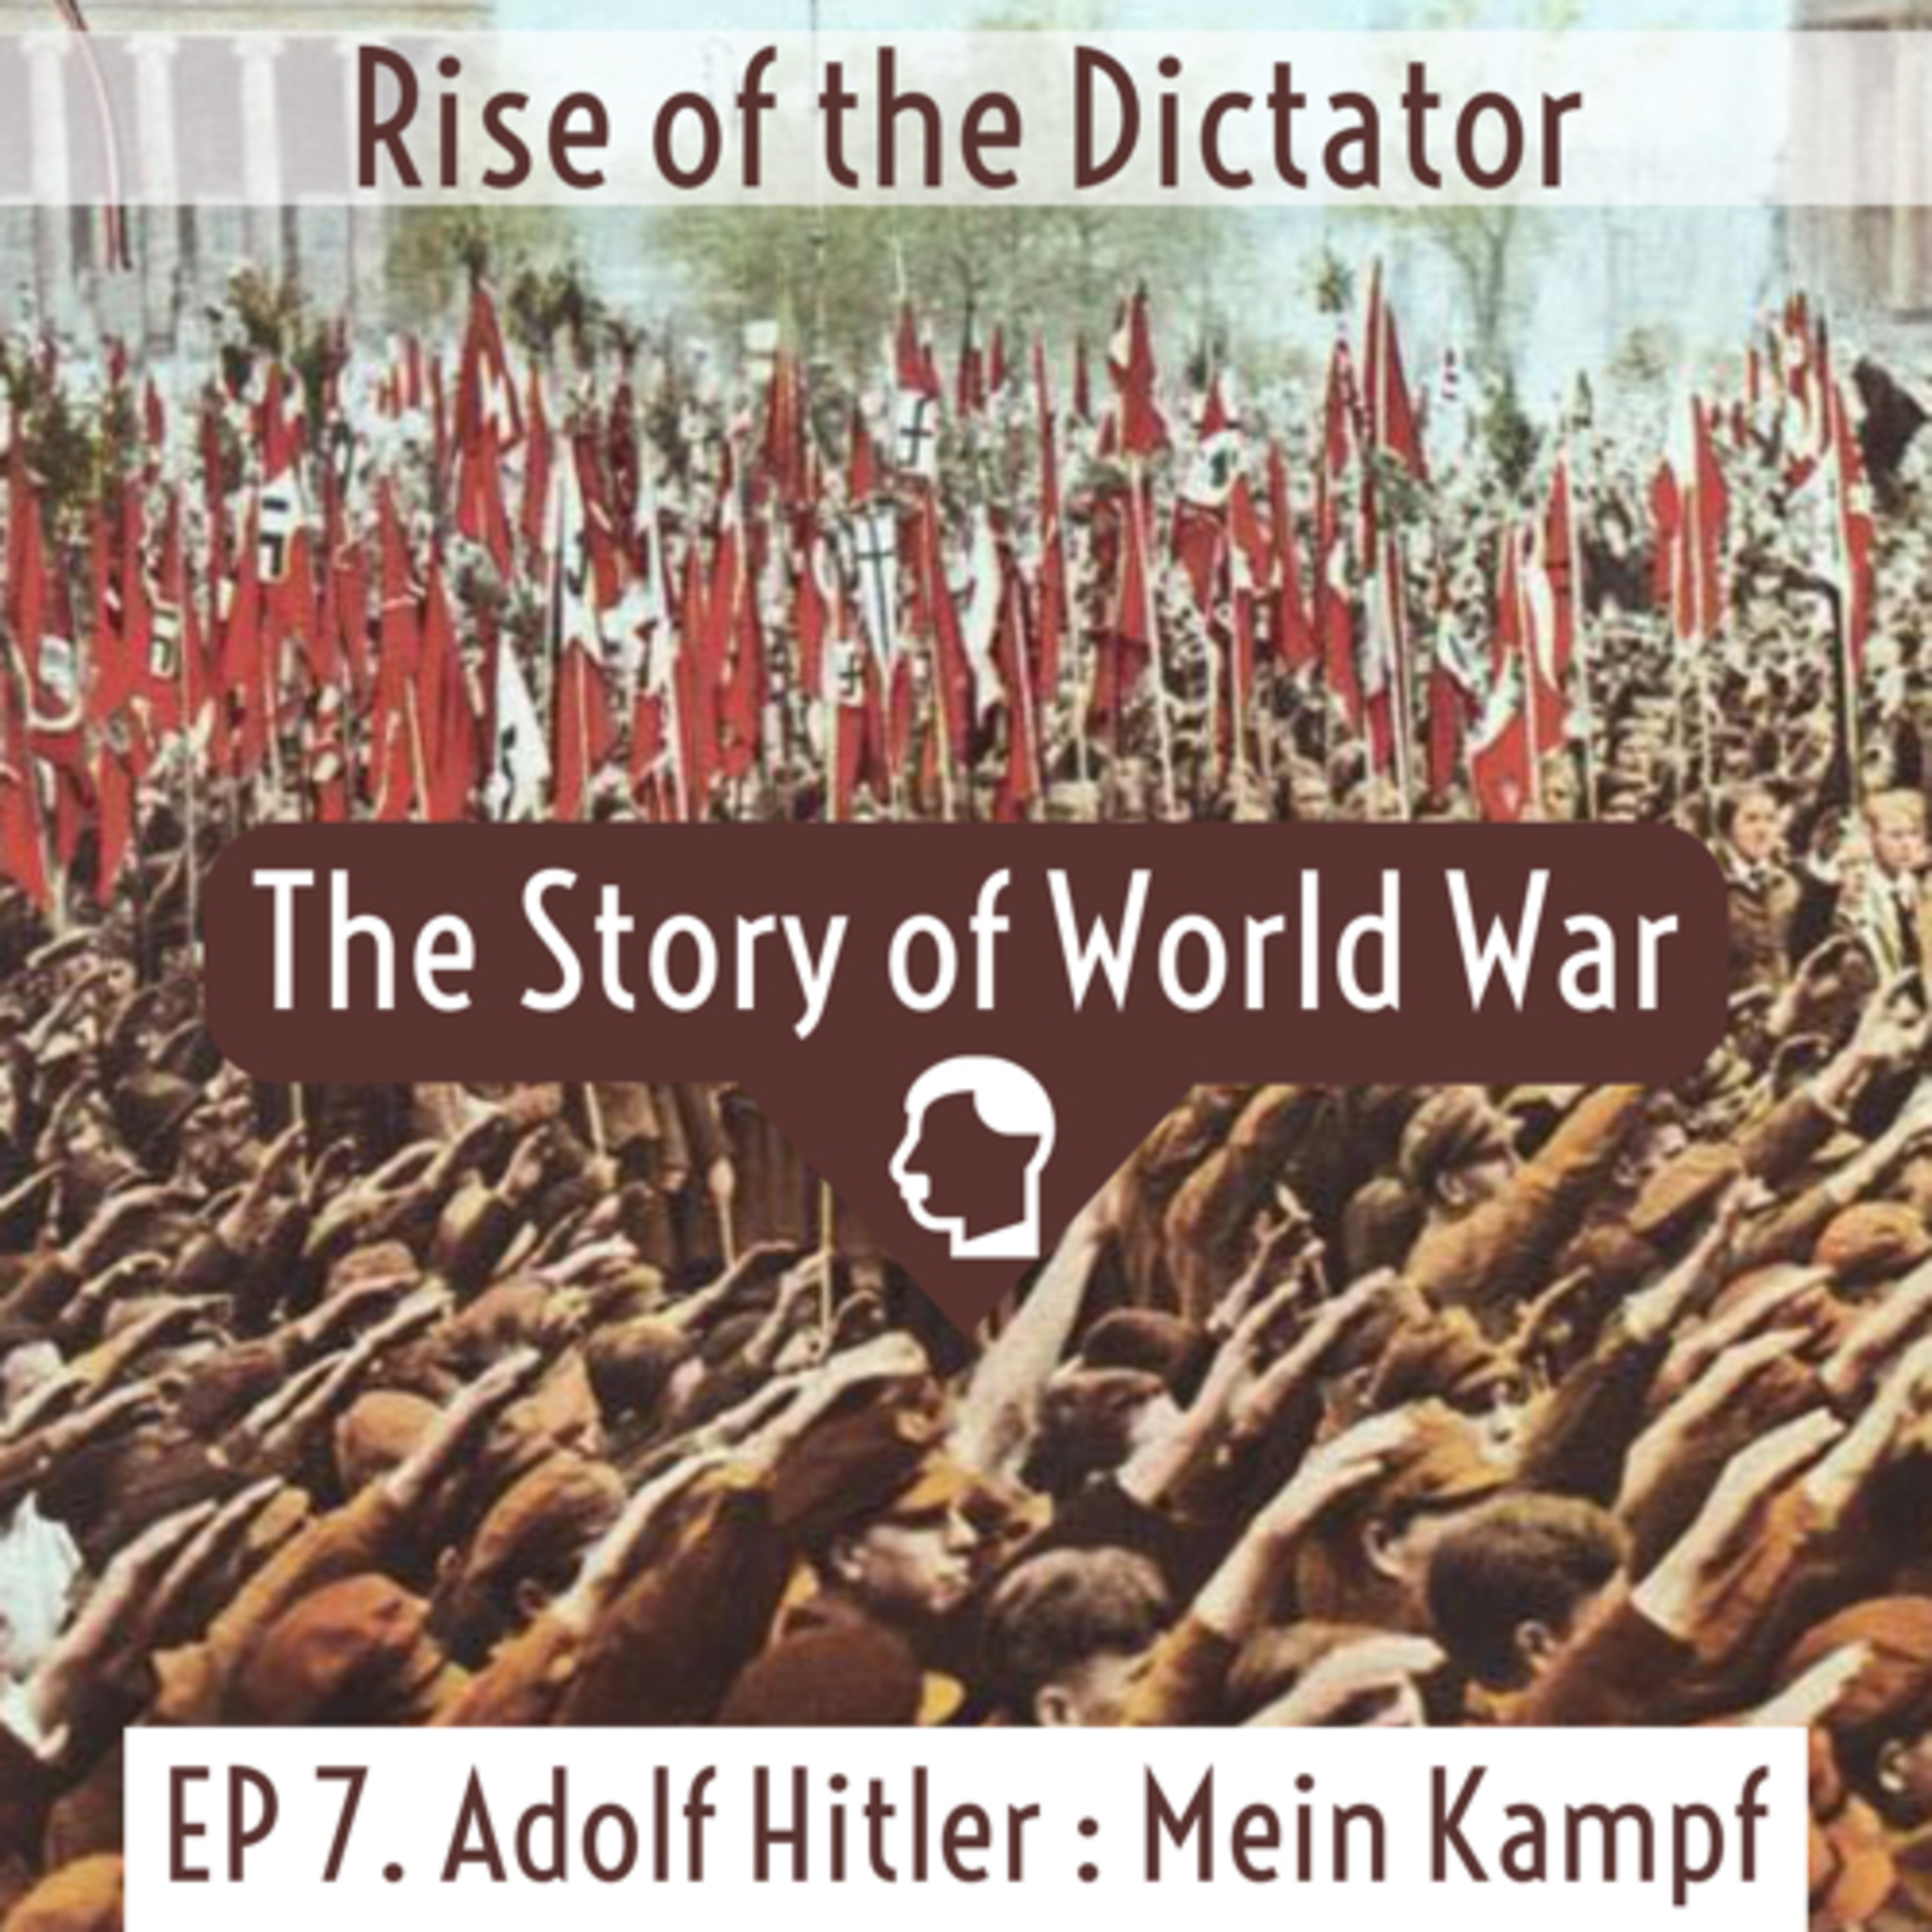 #44 RISE OF THE DICTATOR | Ep 7. Adolf Hitler : Mein Kampf